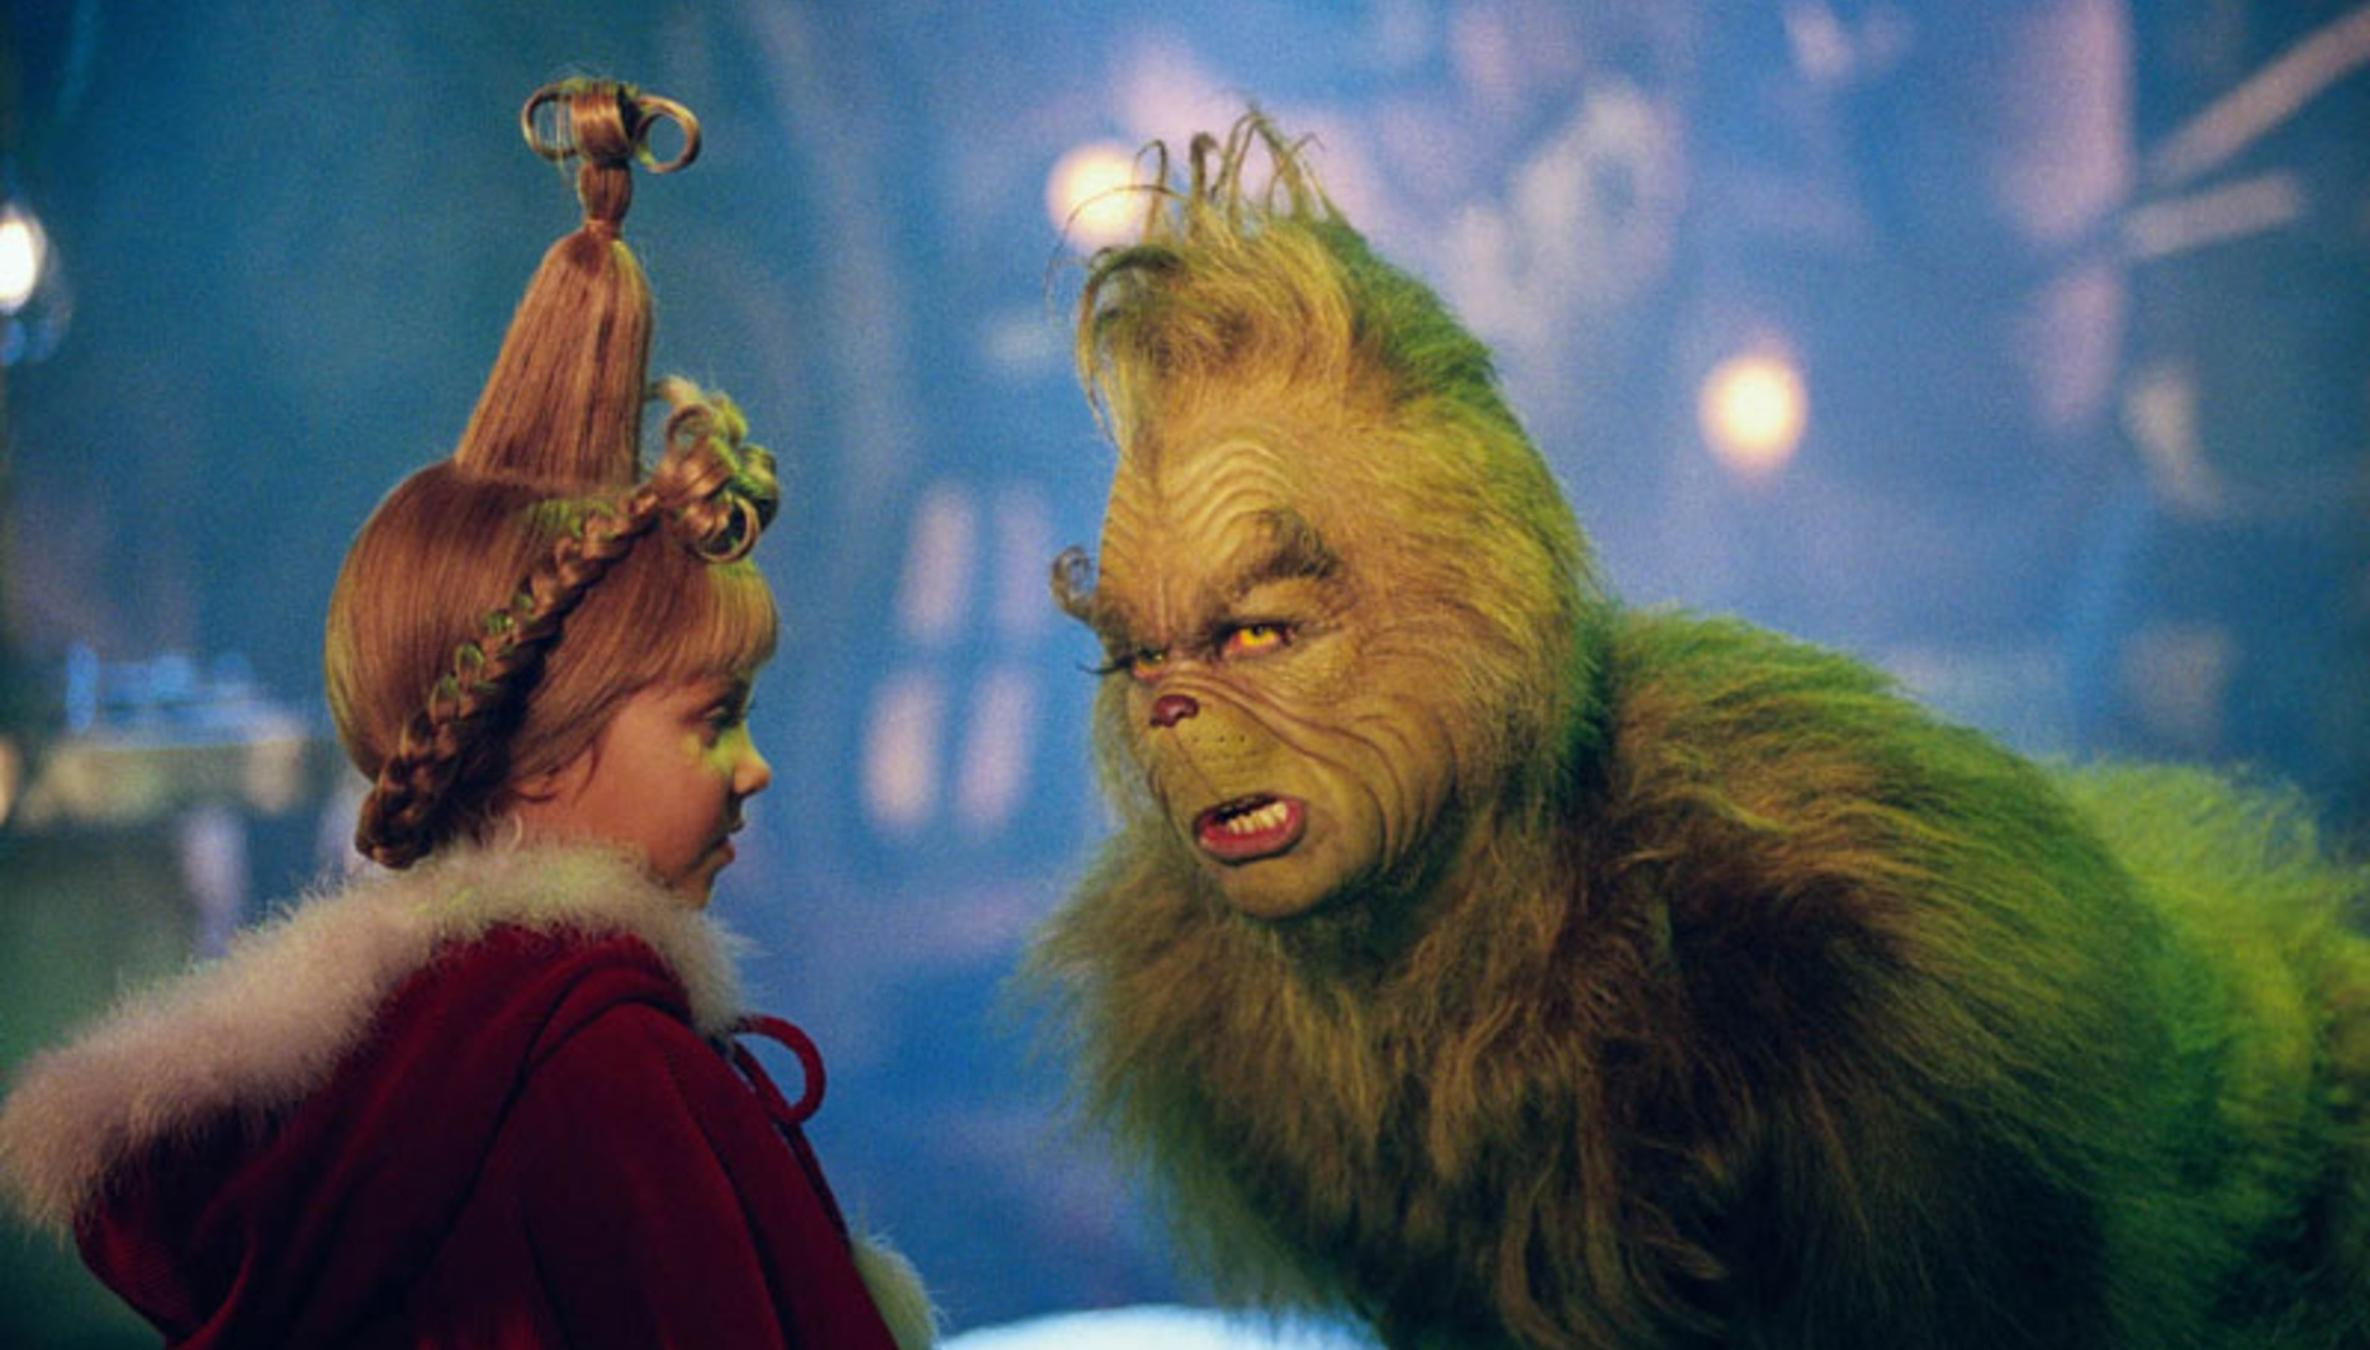 How The Grinch Stole Christmas Cast Animated.Now Casting Play Cindy Lou Who And Others In Dr Seuss